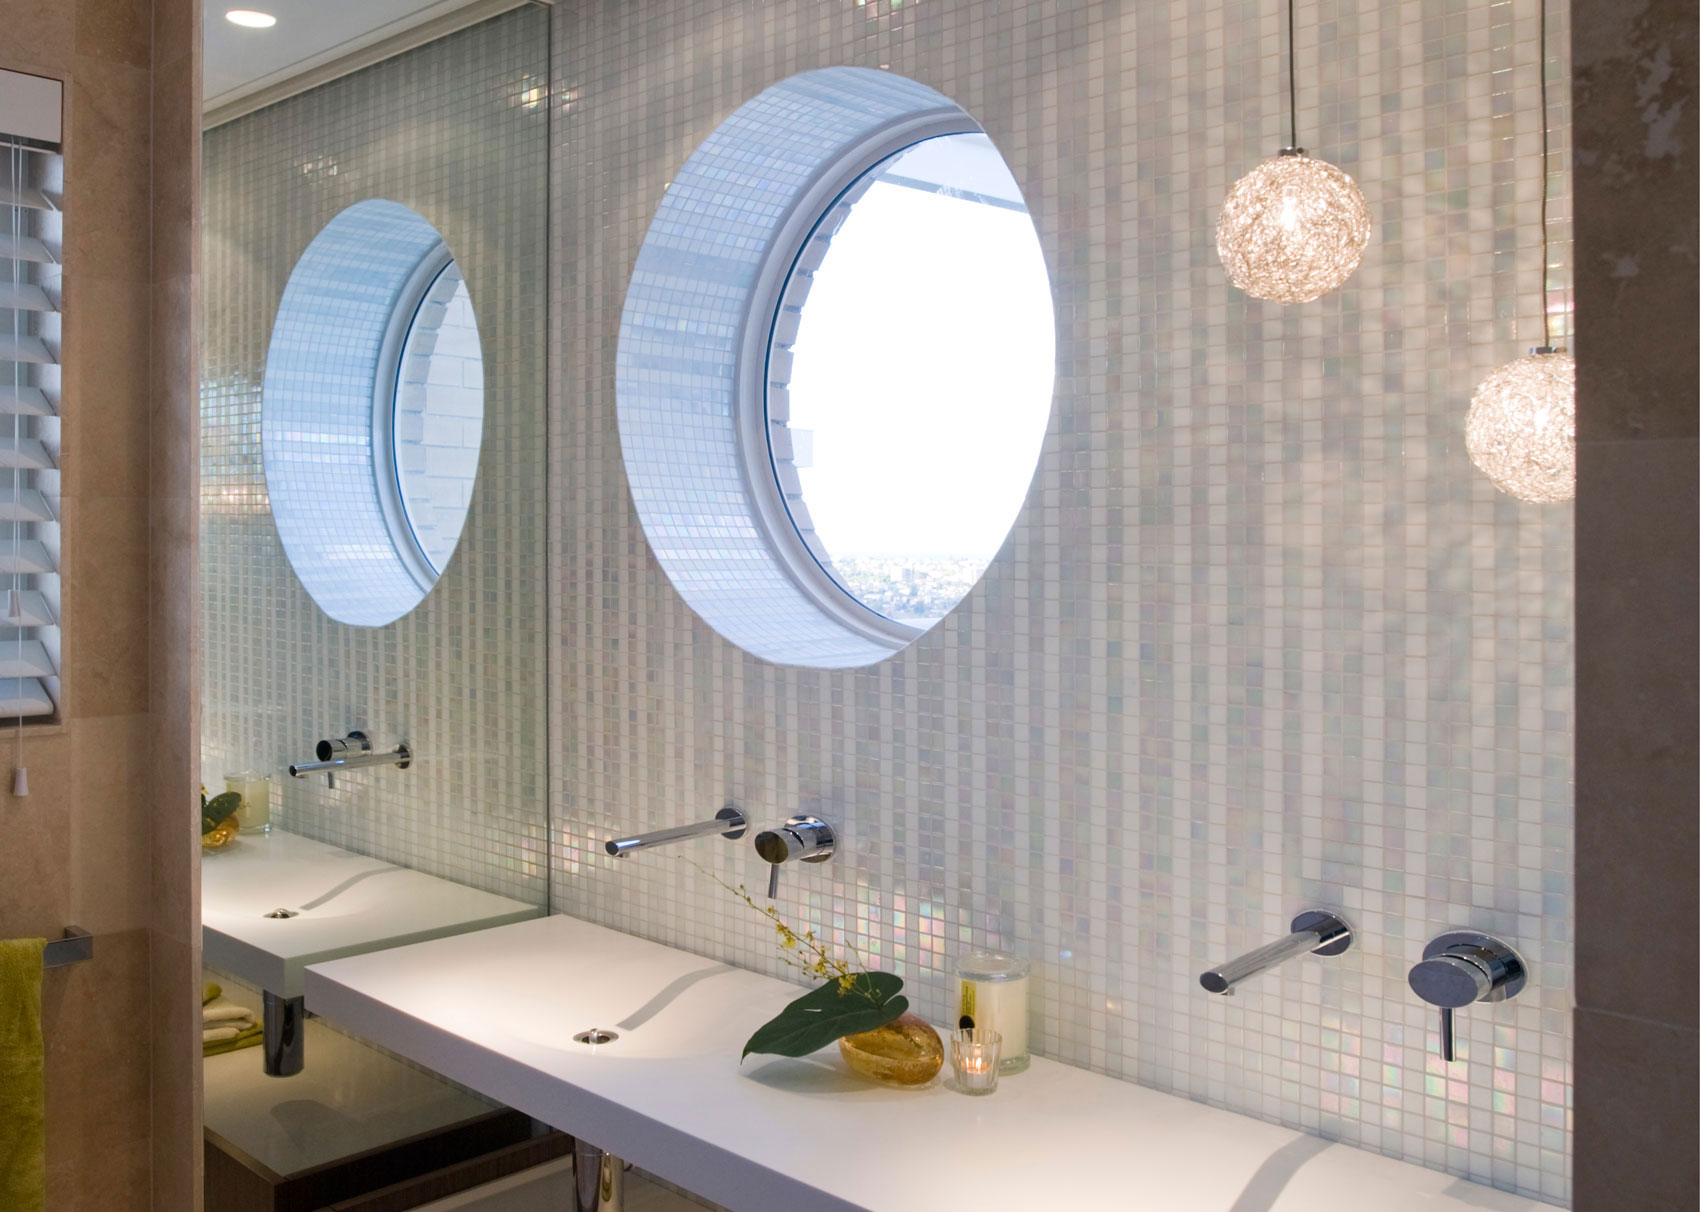 Before/After: Bondi Bathroom Remodel by Minosa Design